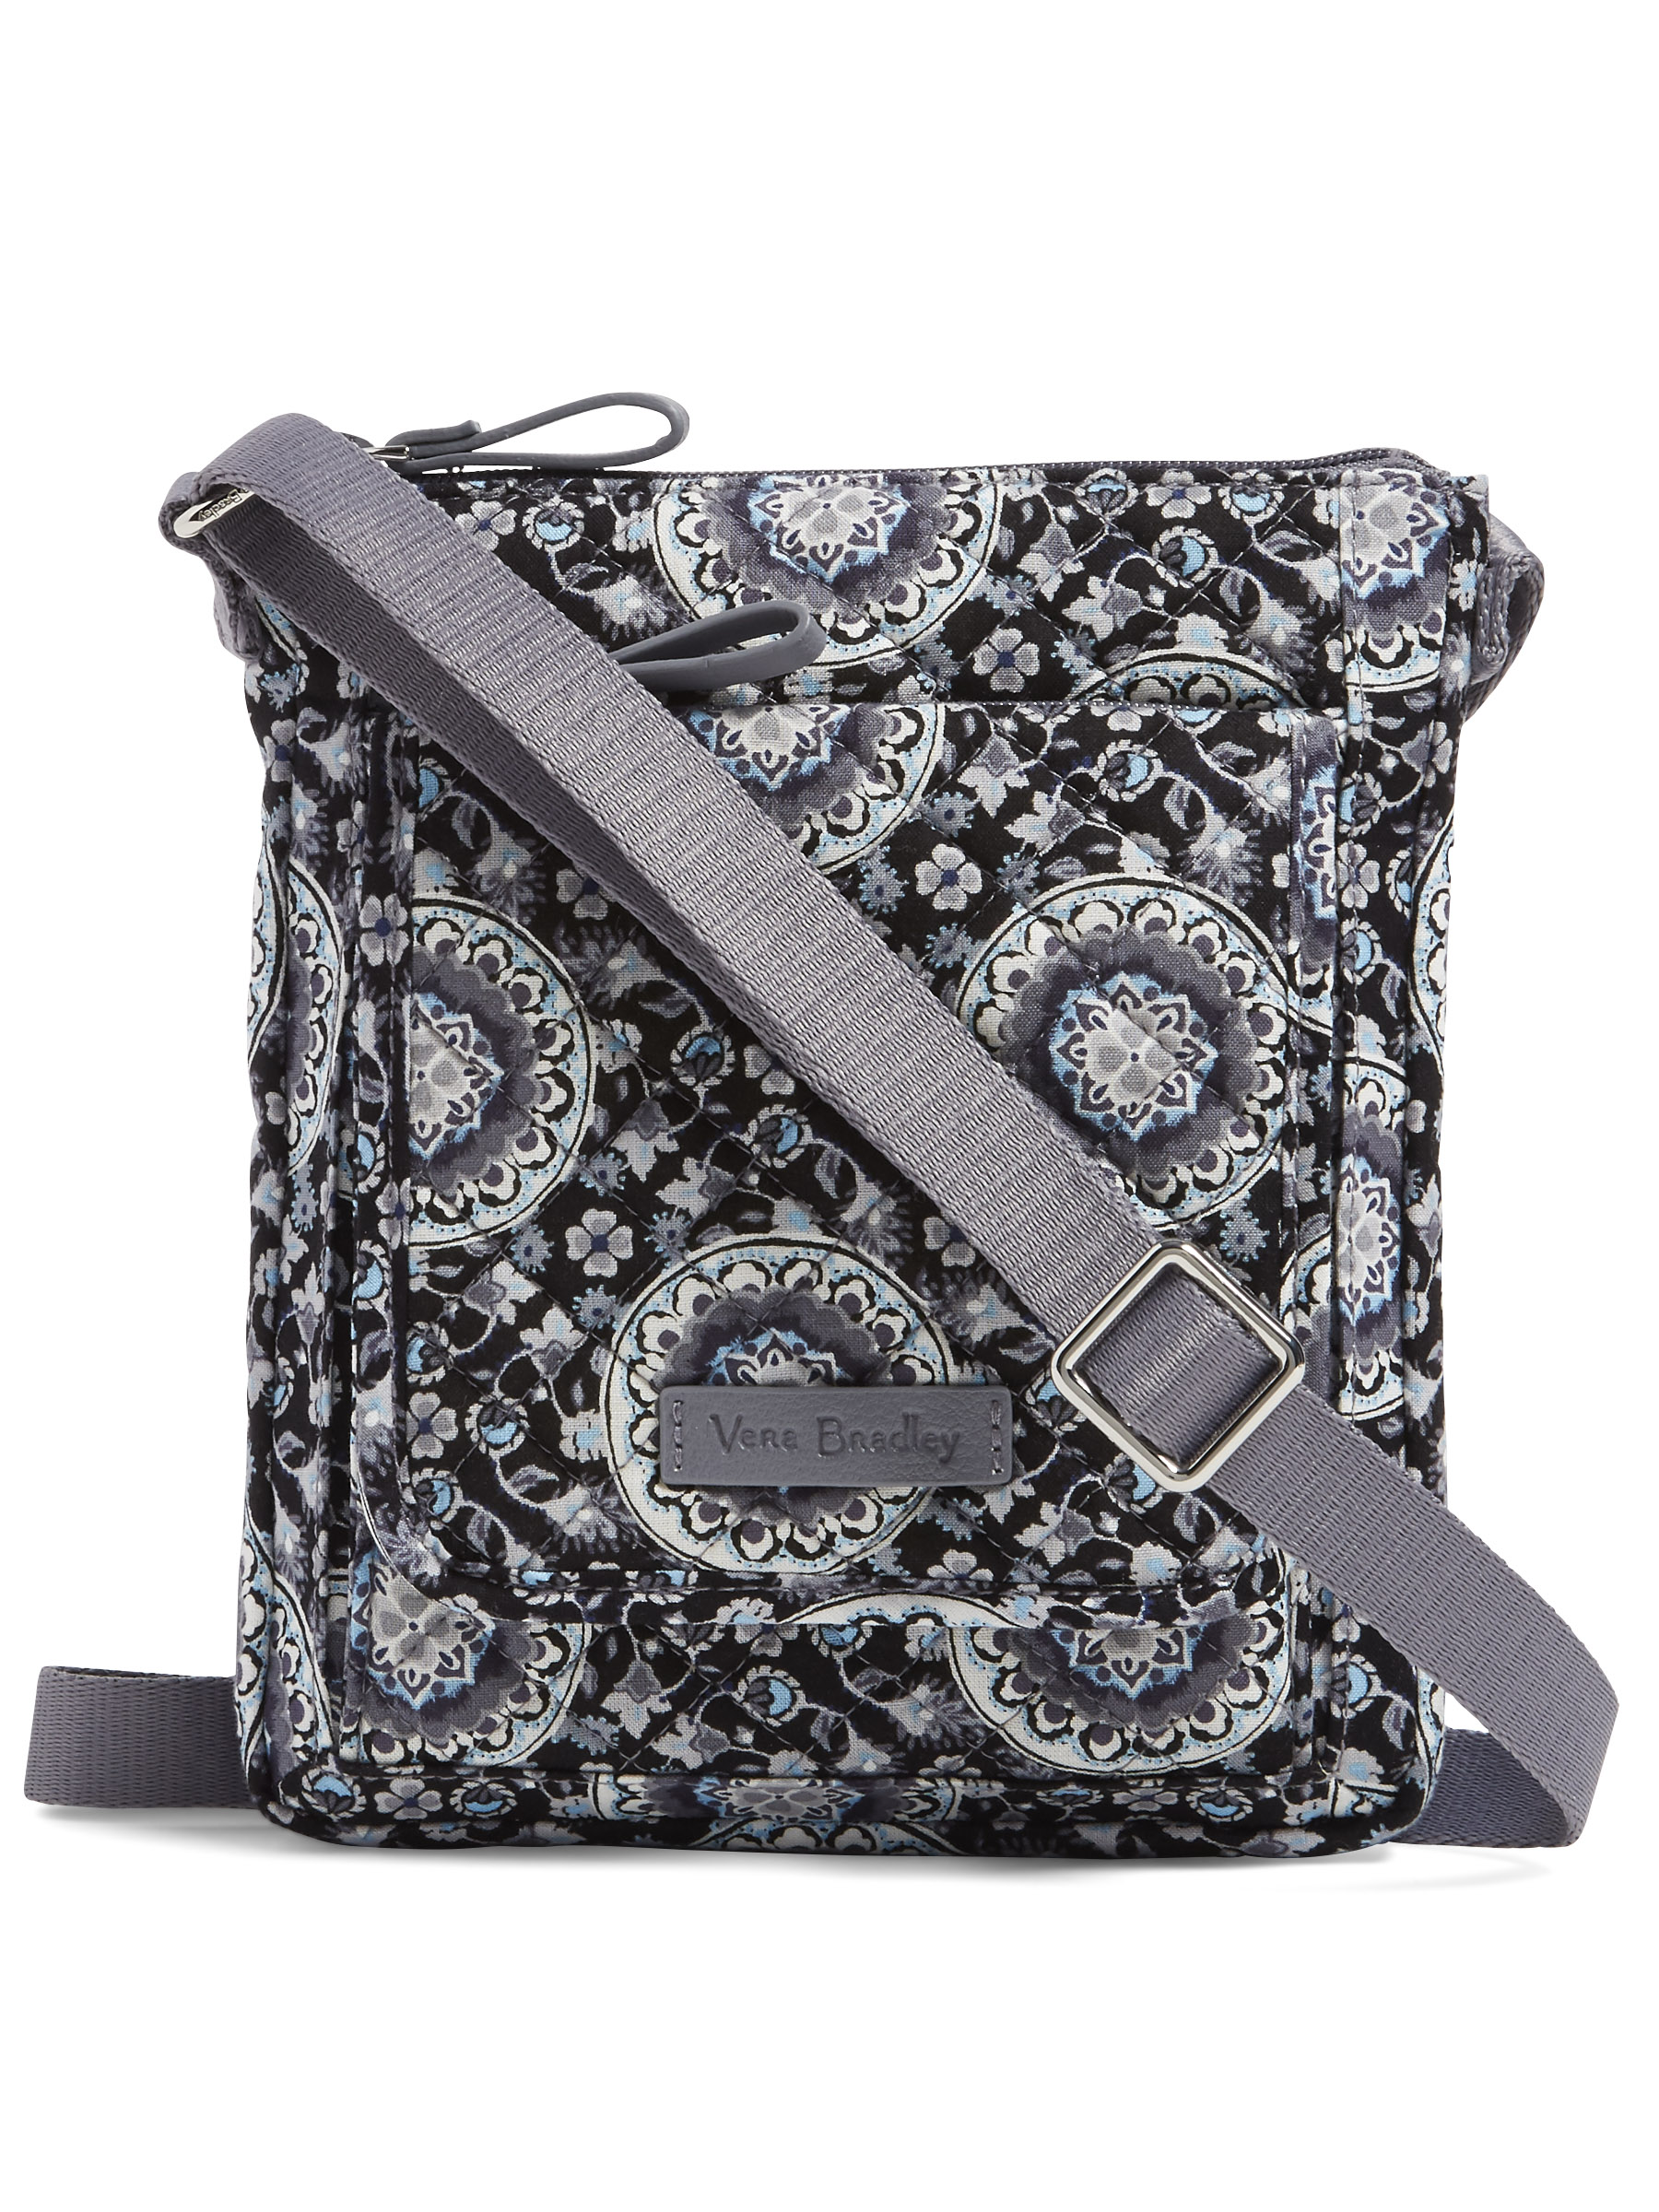 Mini Mini Hipster Iphone 6 Plus Case Smart Phone Case Adjustable Strap Quilted Fabric Paisley Multi Color Black